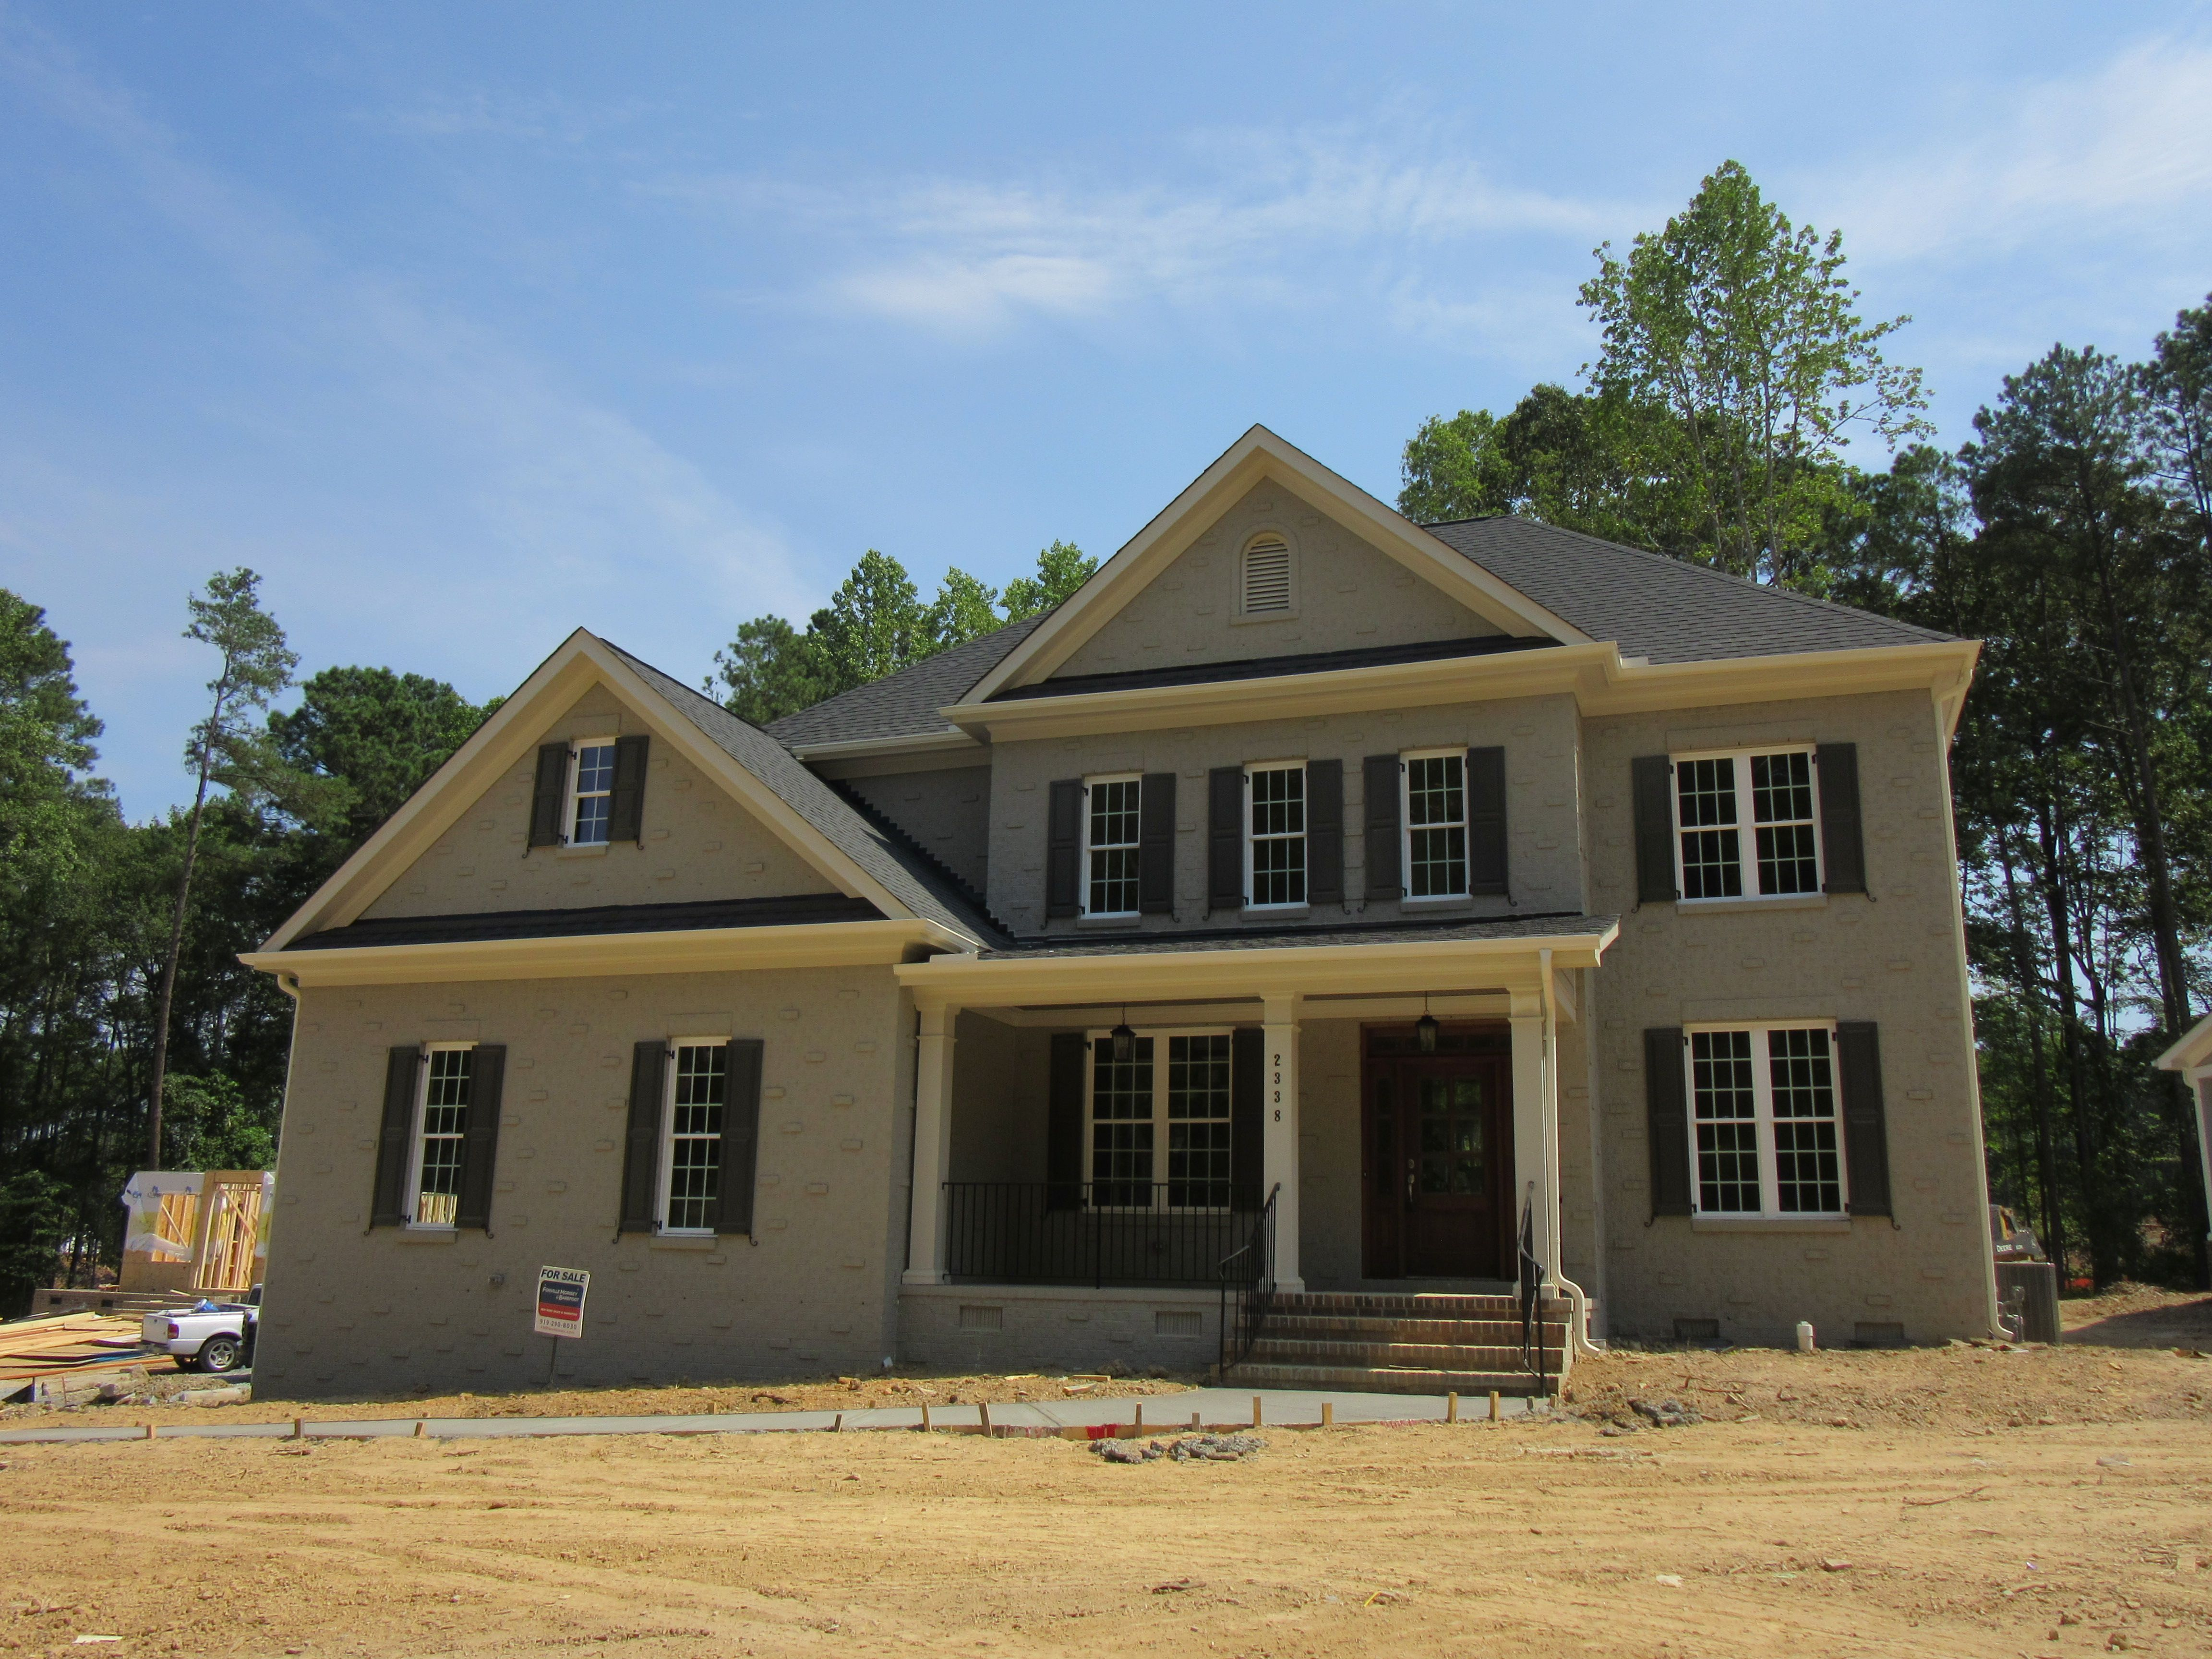 l and l of raleigh built this coming soon home in bella casa apex rh pinterest com